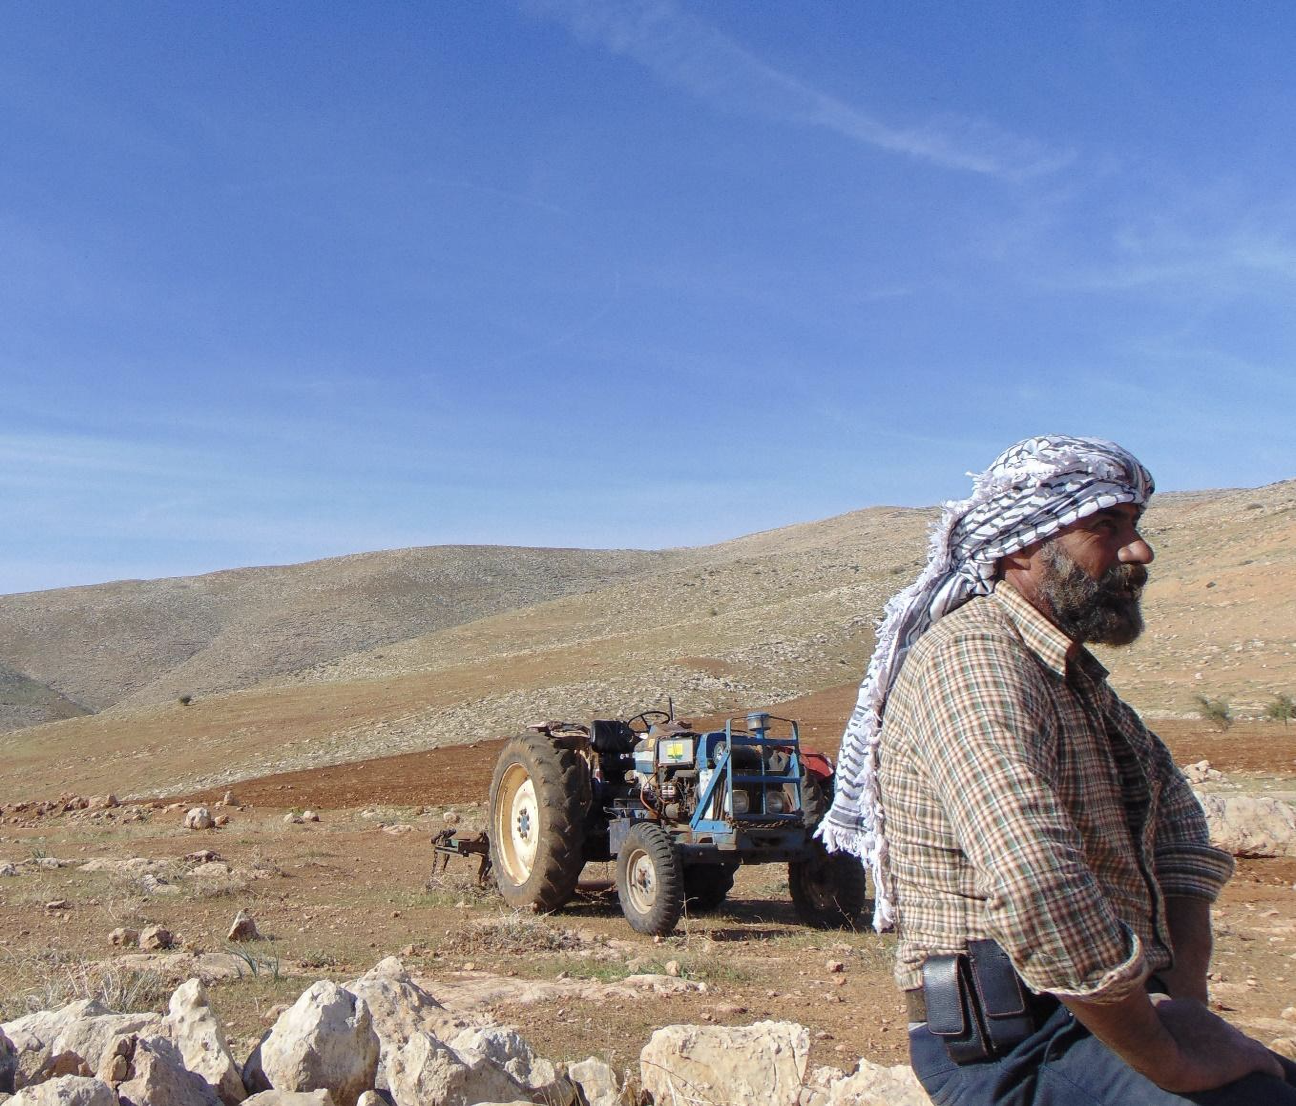 A Palestinian man observes his land that is being threatened by Israeli settlers